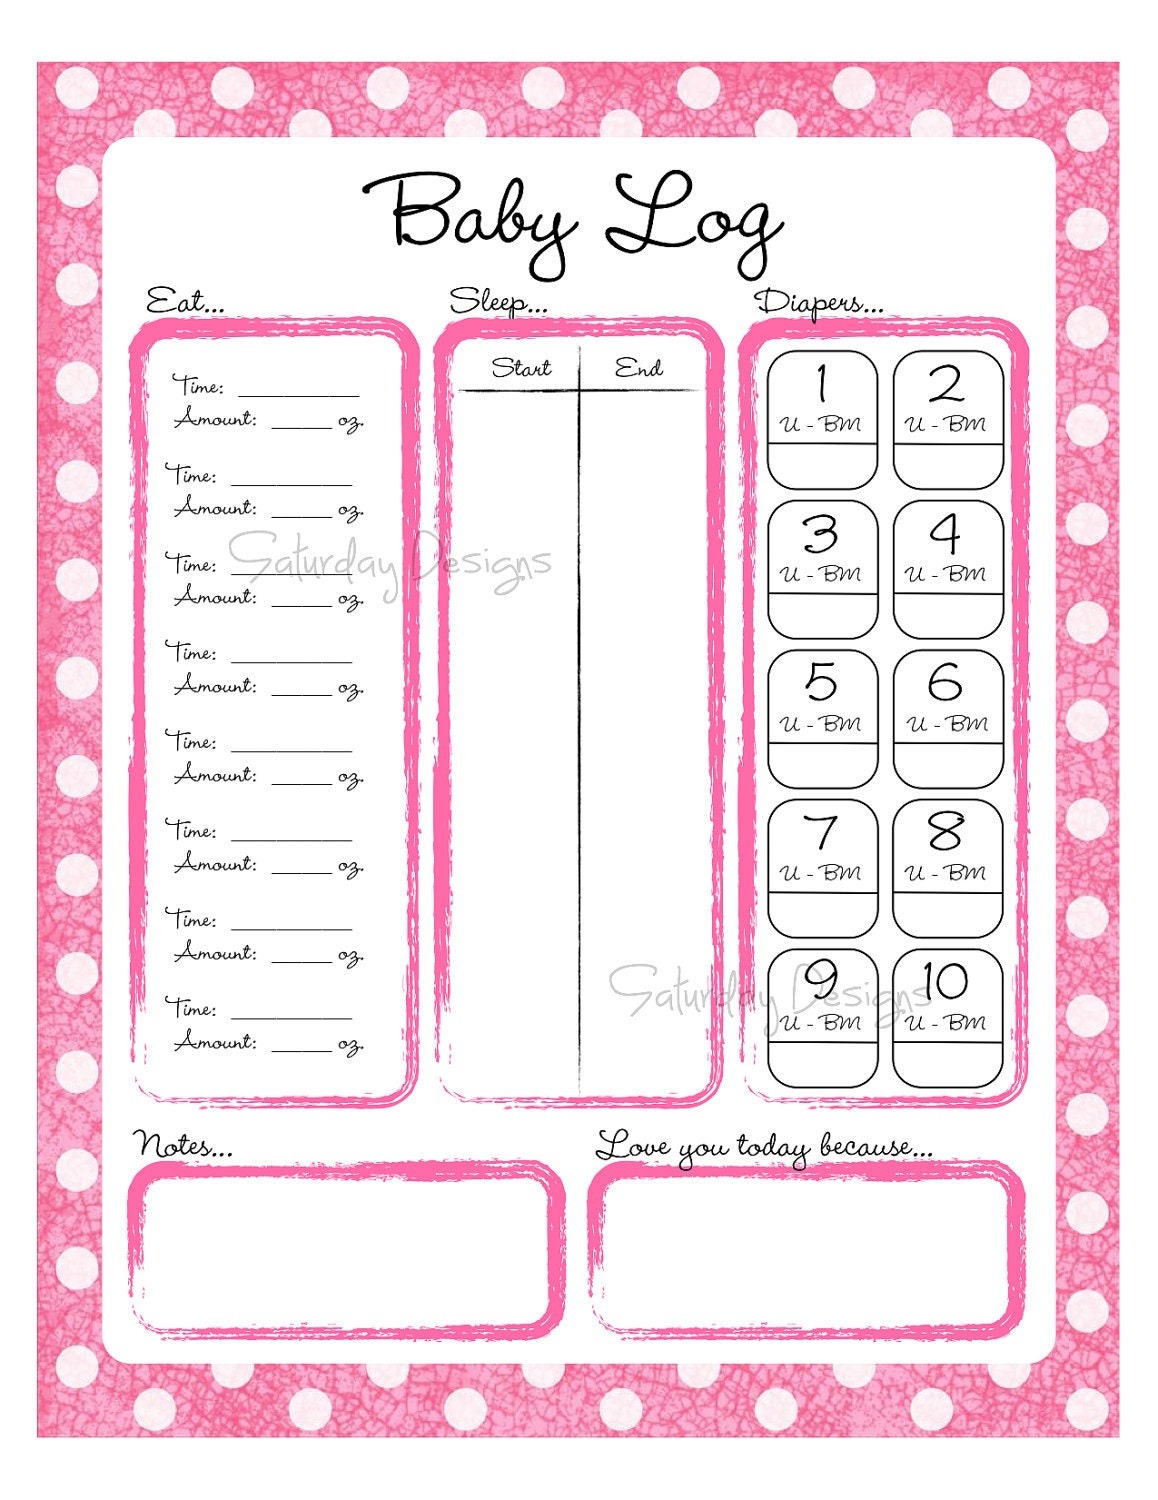 ... /blog/2012/11/13/free-download-baby-feeding-and-diapering-chart.html